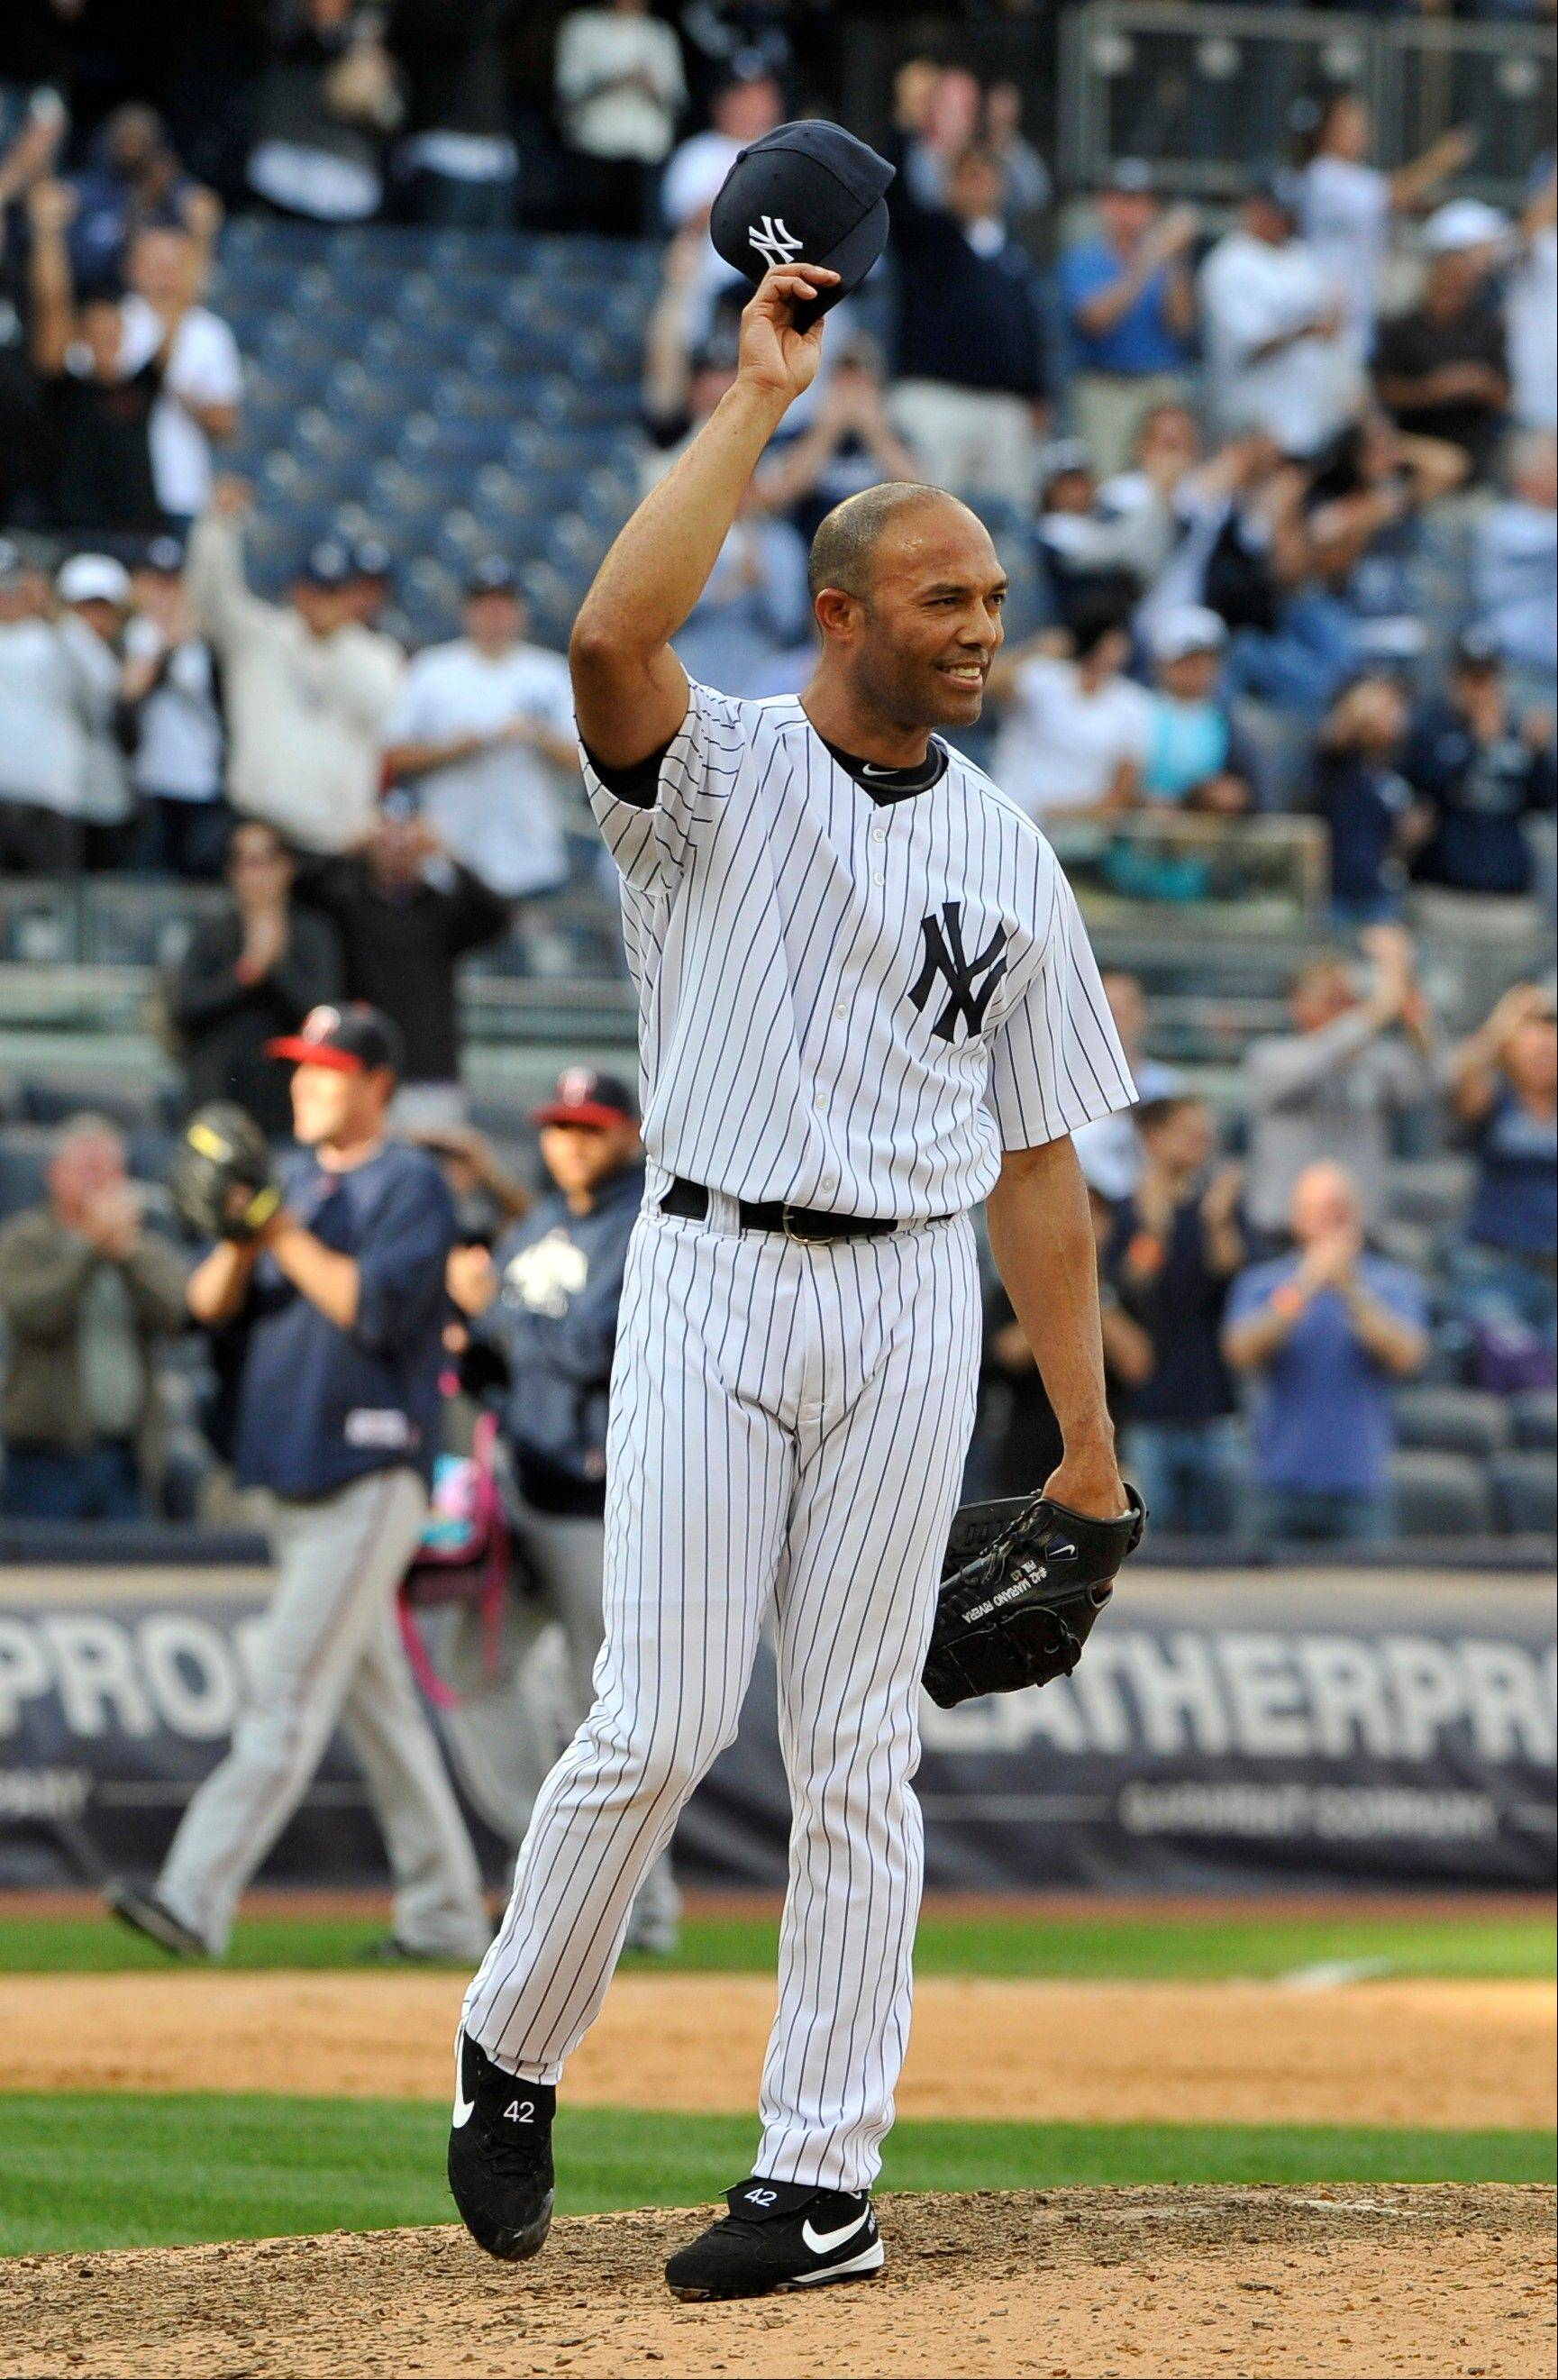 FILE - In this Sept. 19, 2011 file photo, New York Yankees' Mariano Rivera tips his cap to acknowledge the cheers of the crowd after recording his 602nd save as the Yankees beat the Minnesota Twins 6-4 in a baseball game at Yankee Stadium in New York. A person familiar with the decision says that Rivera plans to retire after the 2013 season. The person spoke to The Associated Press on Thursday, March 7, 2013, on condition of anonymity because there had been no official announcement.